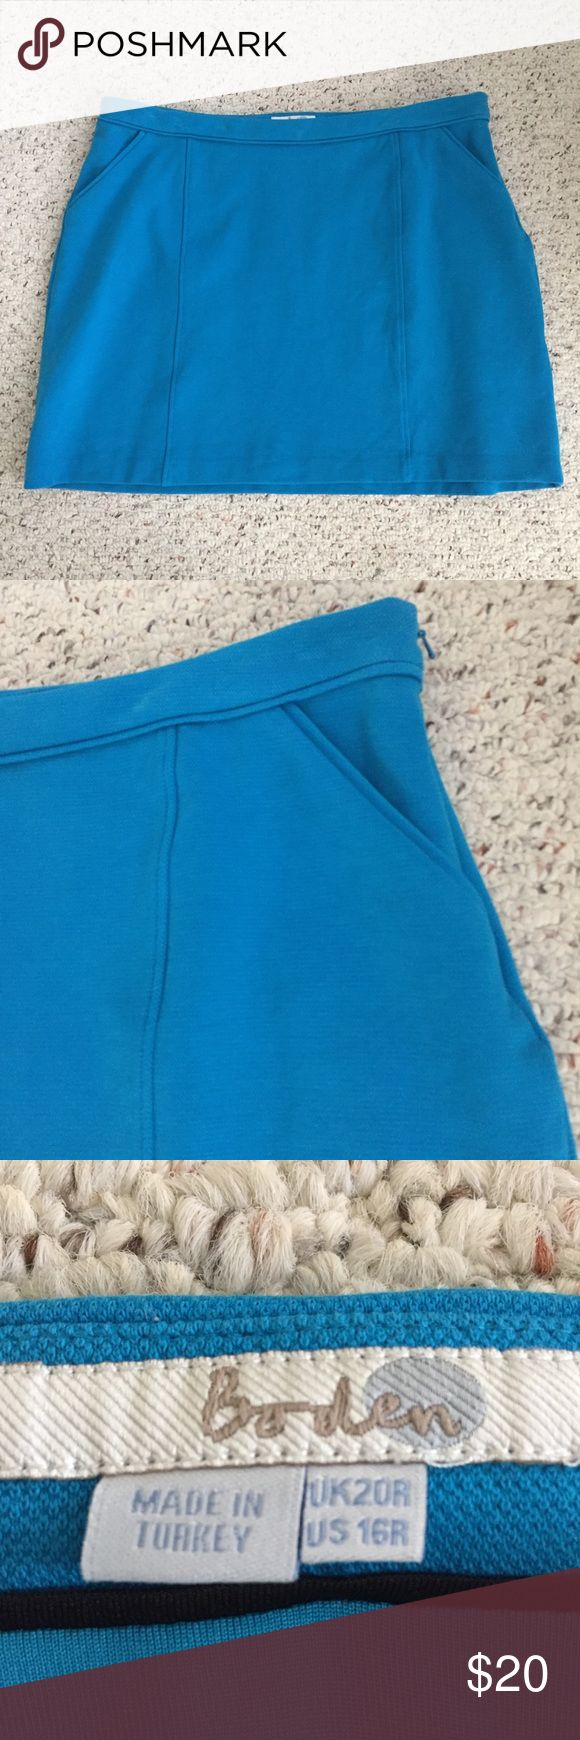 "Boden Turquoise Mini Skirt Size 16 Women's Boden Mini Skirt  Pretty solid turquoise color  Very nice quality. Thick material and lined.  85% Cotton 13% Polyamide 2% Elastane  UK Size 20 US Size 16  Waist measures 19"" across  Length measures 17.5""  Very good condition. There is a slight discoloration on the back of the skirt. See up close picture. No other flaws that I see. Boden Skirts Mini"